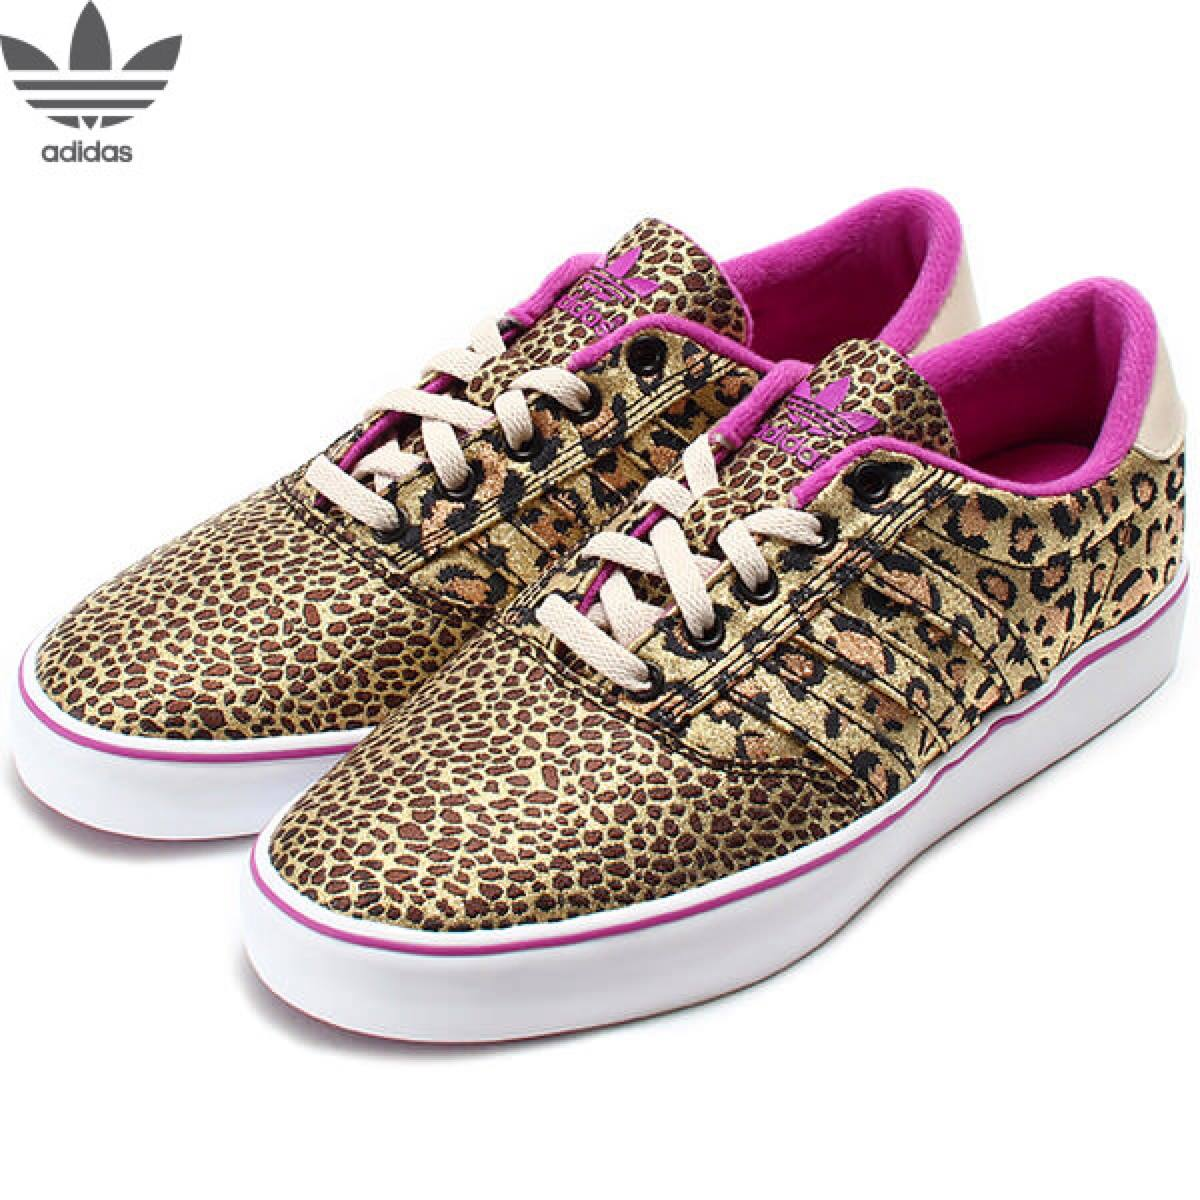 zapatillas adidas animal print